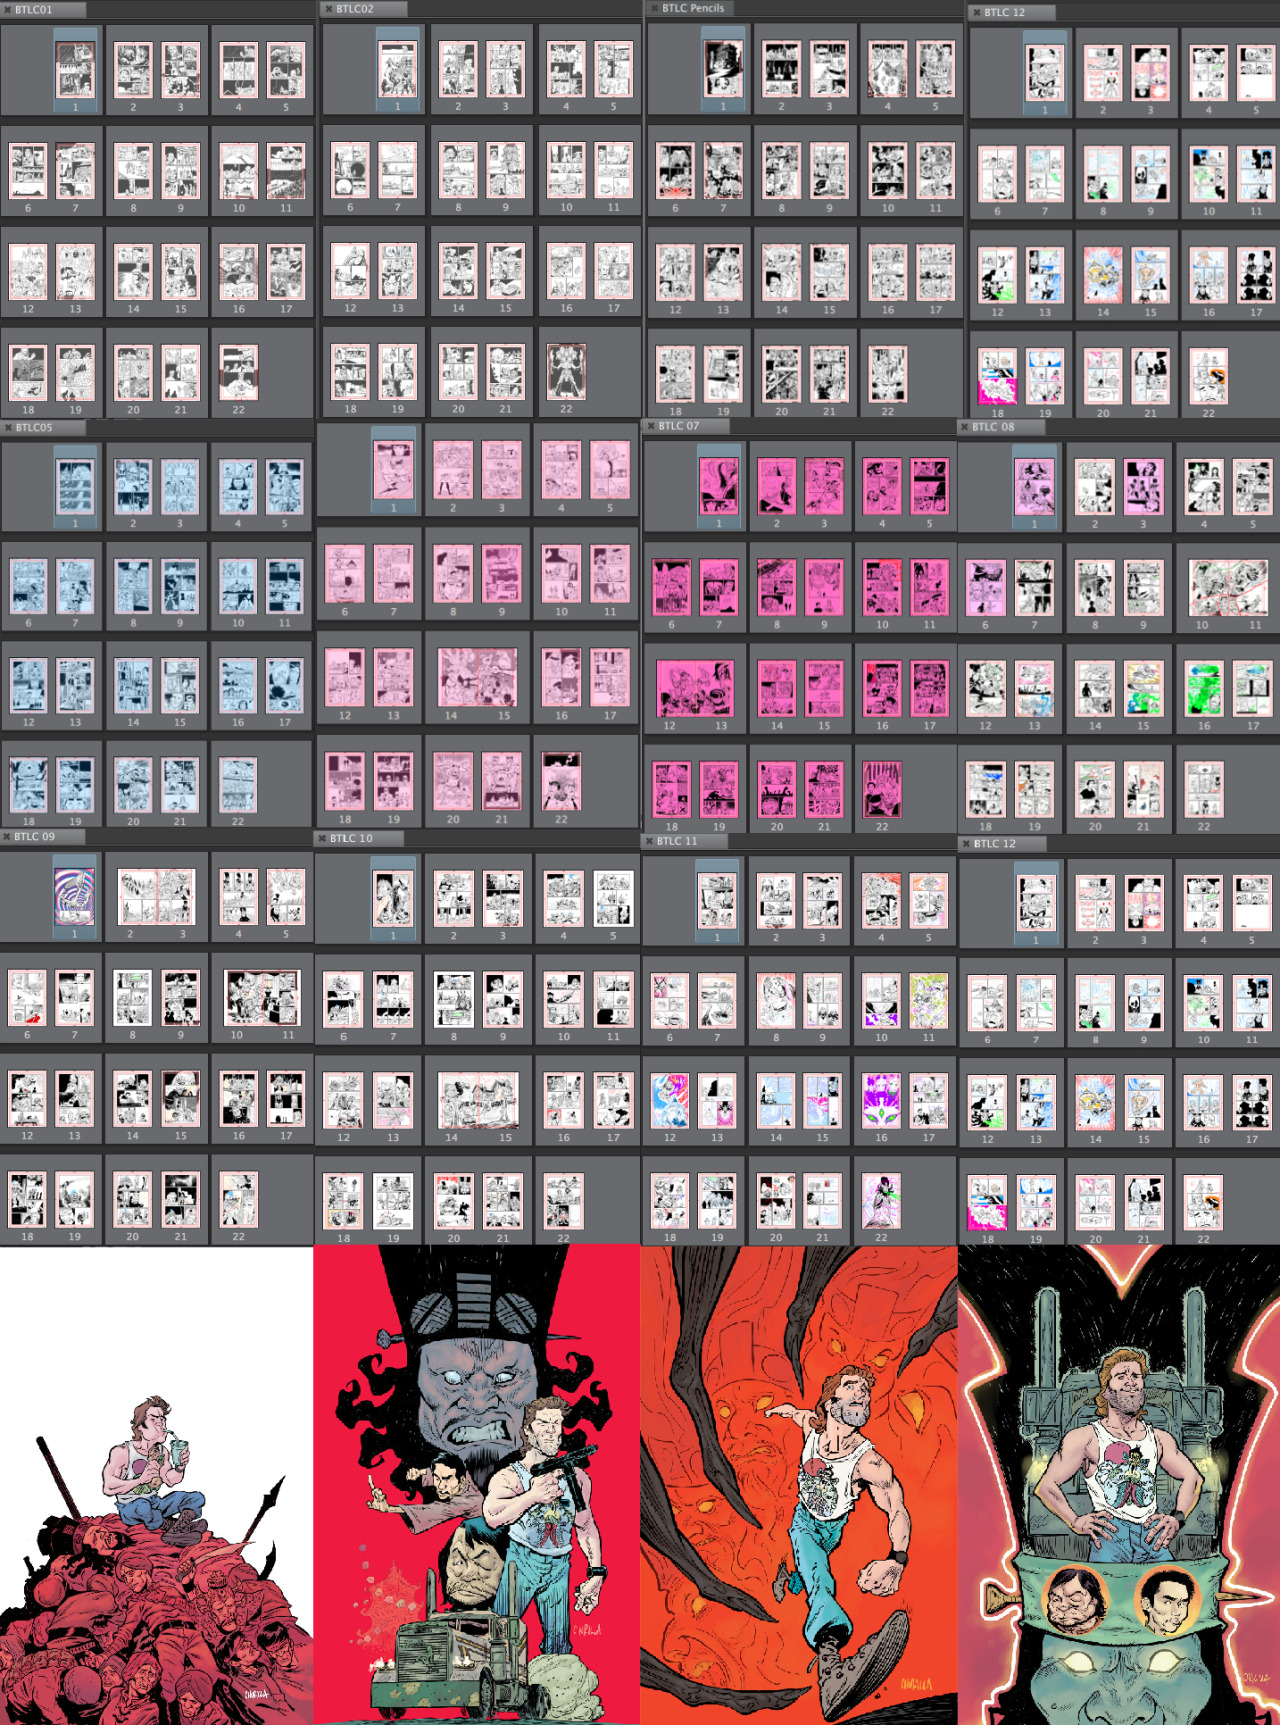 ryanklindsay :      brianchurilla :     So you want to be a comic book artist..? Here's some sobering information.  One year. 12 issues. 264 pages. 4 covers.   As a full-time comic artist this is the expected output, more or less. Not to say I haven't done a TON of work on the side to make ends meet, but as an artist on an ongoing monthly title, this is generally what you are expected to produce every year. Some artists do much more than this. Some less. It all depends on your productivity and drive.   It's taken a lot of work and a ton of luck, but I've managed to stay busy for the majority of my career. I've gotten married, bought a house and have two beautiful kids. All the while, I was working full time as a professional comic artist. This schedule has allowed me to stay home with the kids until they were ready for school. I'm truly grateful for the opportunities I've been given and all of the wonderful people I've gotten to know and work with over the years.   I wanted to take this opportunity to give people a look at what it really means to be a professional comic artist; good and bad.  This was a strictly work-for-hire job on a licensed book. That usually means no royalties. The page rate on this project was $125. This is considered an okay page rate by today's standards. Advances on creator-owned projects are a different matter and subject to different criteria, so are jobs at Marvel and DC. That being said, this is a middle-of-the-road page rate. Not great, not terrible.  Gross pay over the year in addition to those four covers was $33,625. After taxes? $24, 210. That's $2,017.50 a month (again, I do a lot of work on the side to make ends meet).  Nearly all of that aforementioned salary goes to the mortgage, and so the majority of the financial responsibility falls on my  wife .   Remember those kids i mentioned? Full-time daycare in Portland is somewhere in the neighborhood of $1,000 -$1,500 per kid. Not to mention health insurance, utilities, car payments